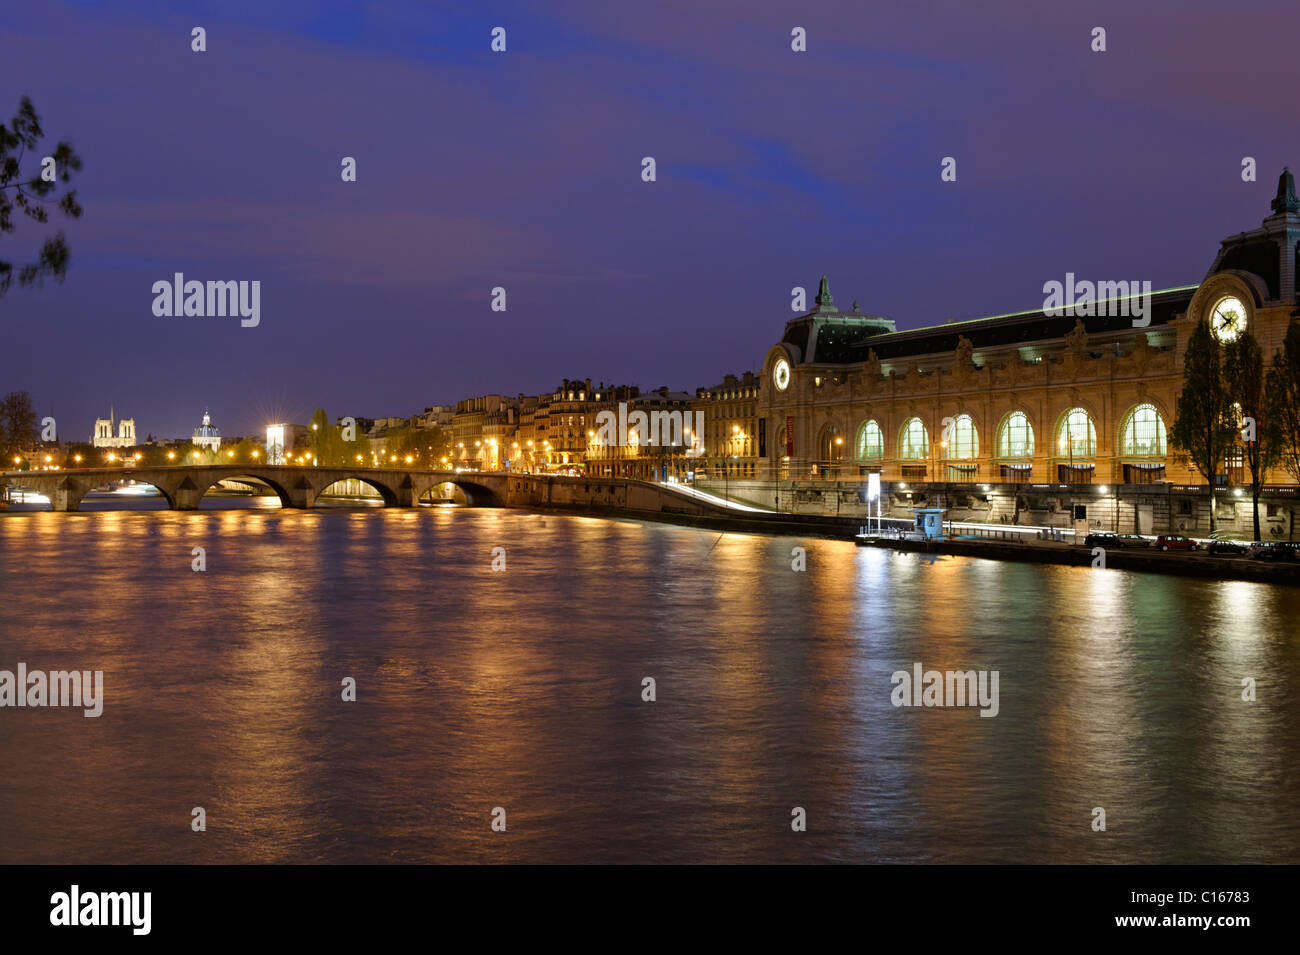 Musee d Orsay, on the Seine River, city centre, Paris, France, Europe - Stock Image